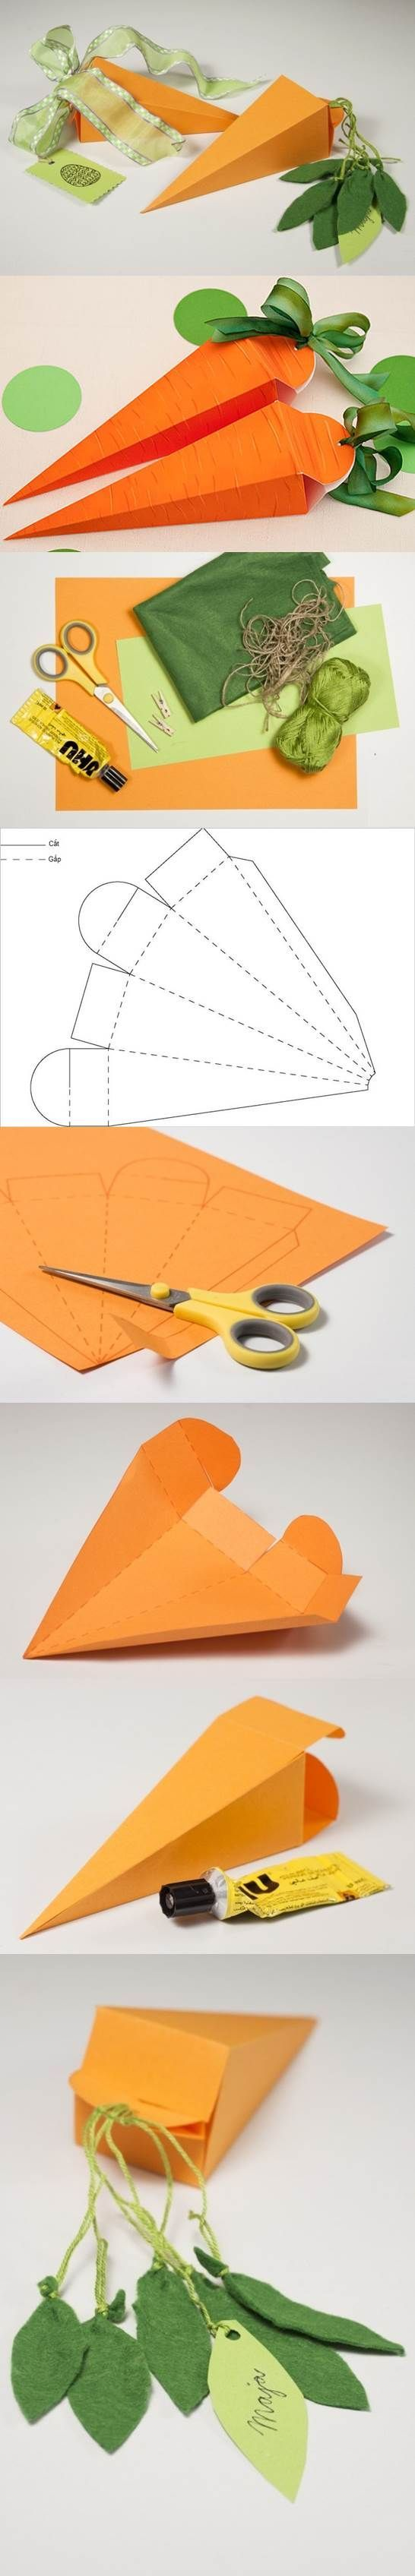 Pin by christena mosier on diy time pinterest easter card ideas how to make a carrot gift box diy diy crafts do it yourself diy projects gift box carrot solutioingenieria Choice Image